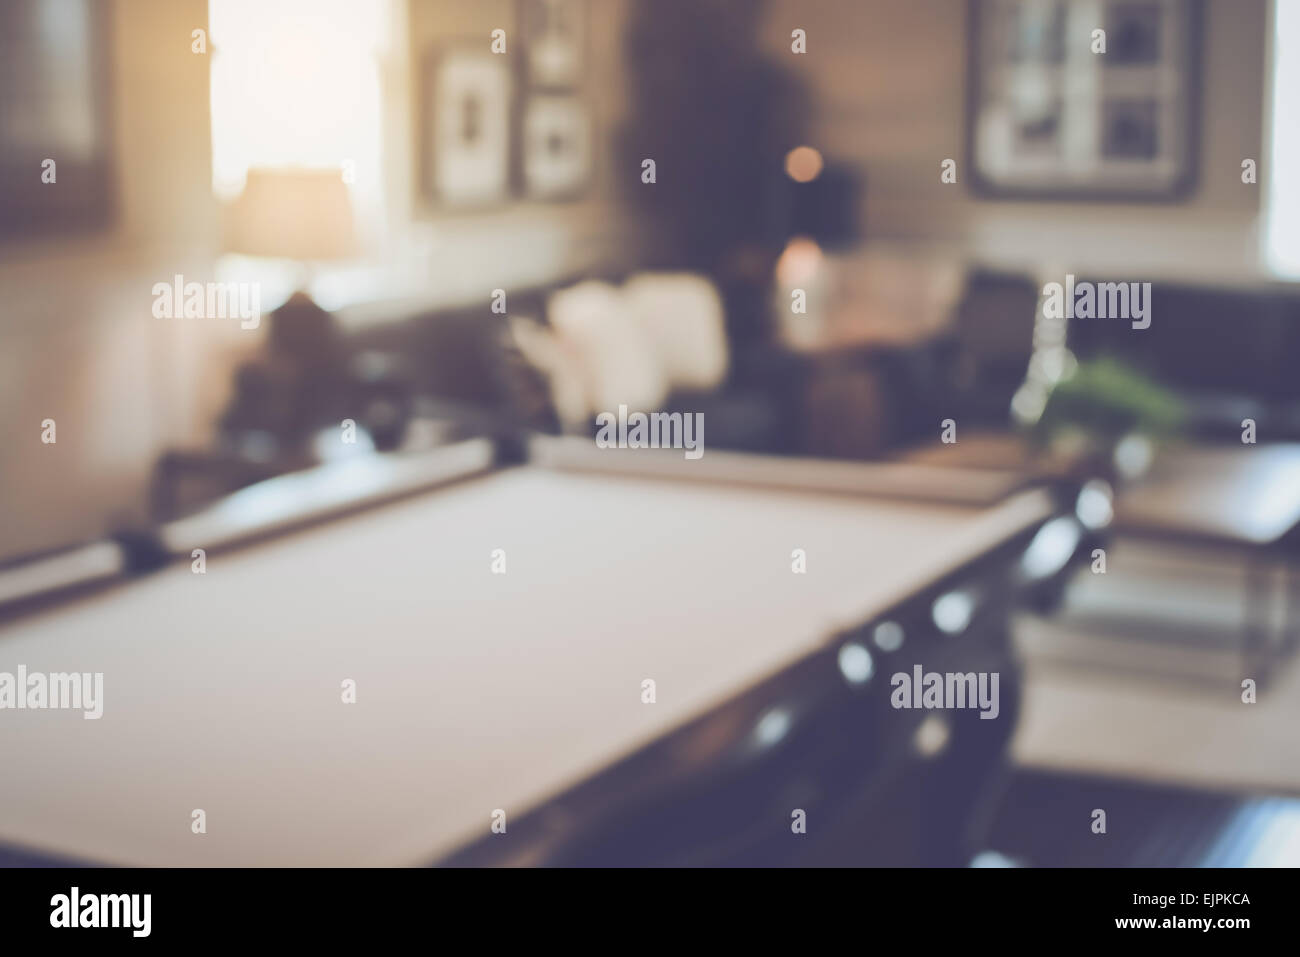 Blurred Living Room with Pool Table applying Retro Instagram Style Filter - Stock Image